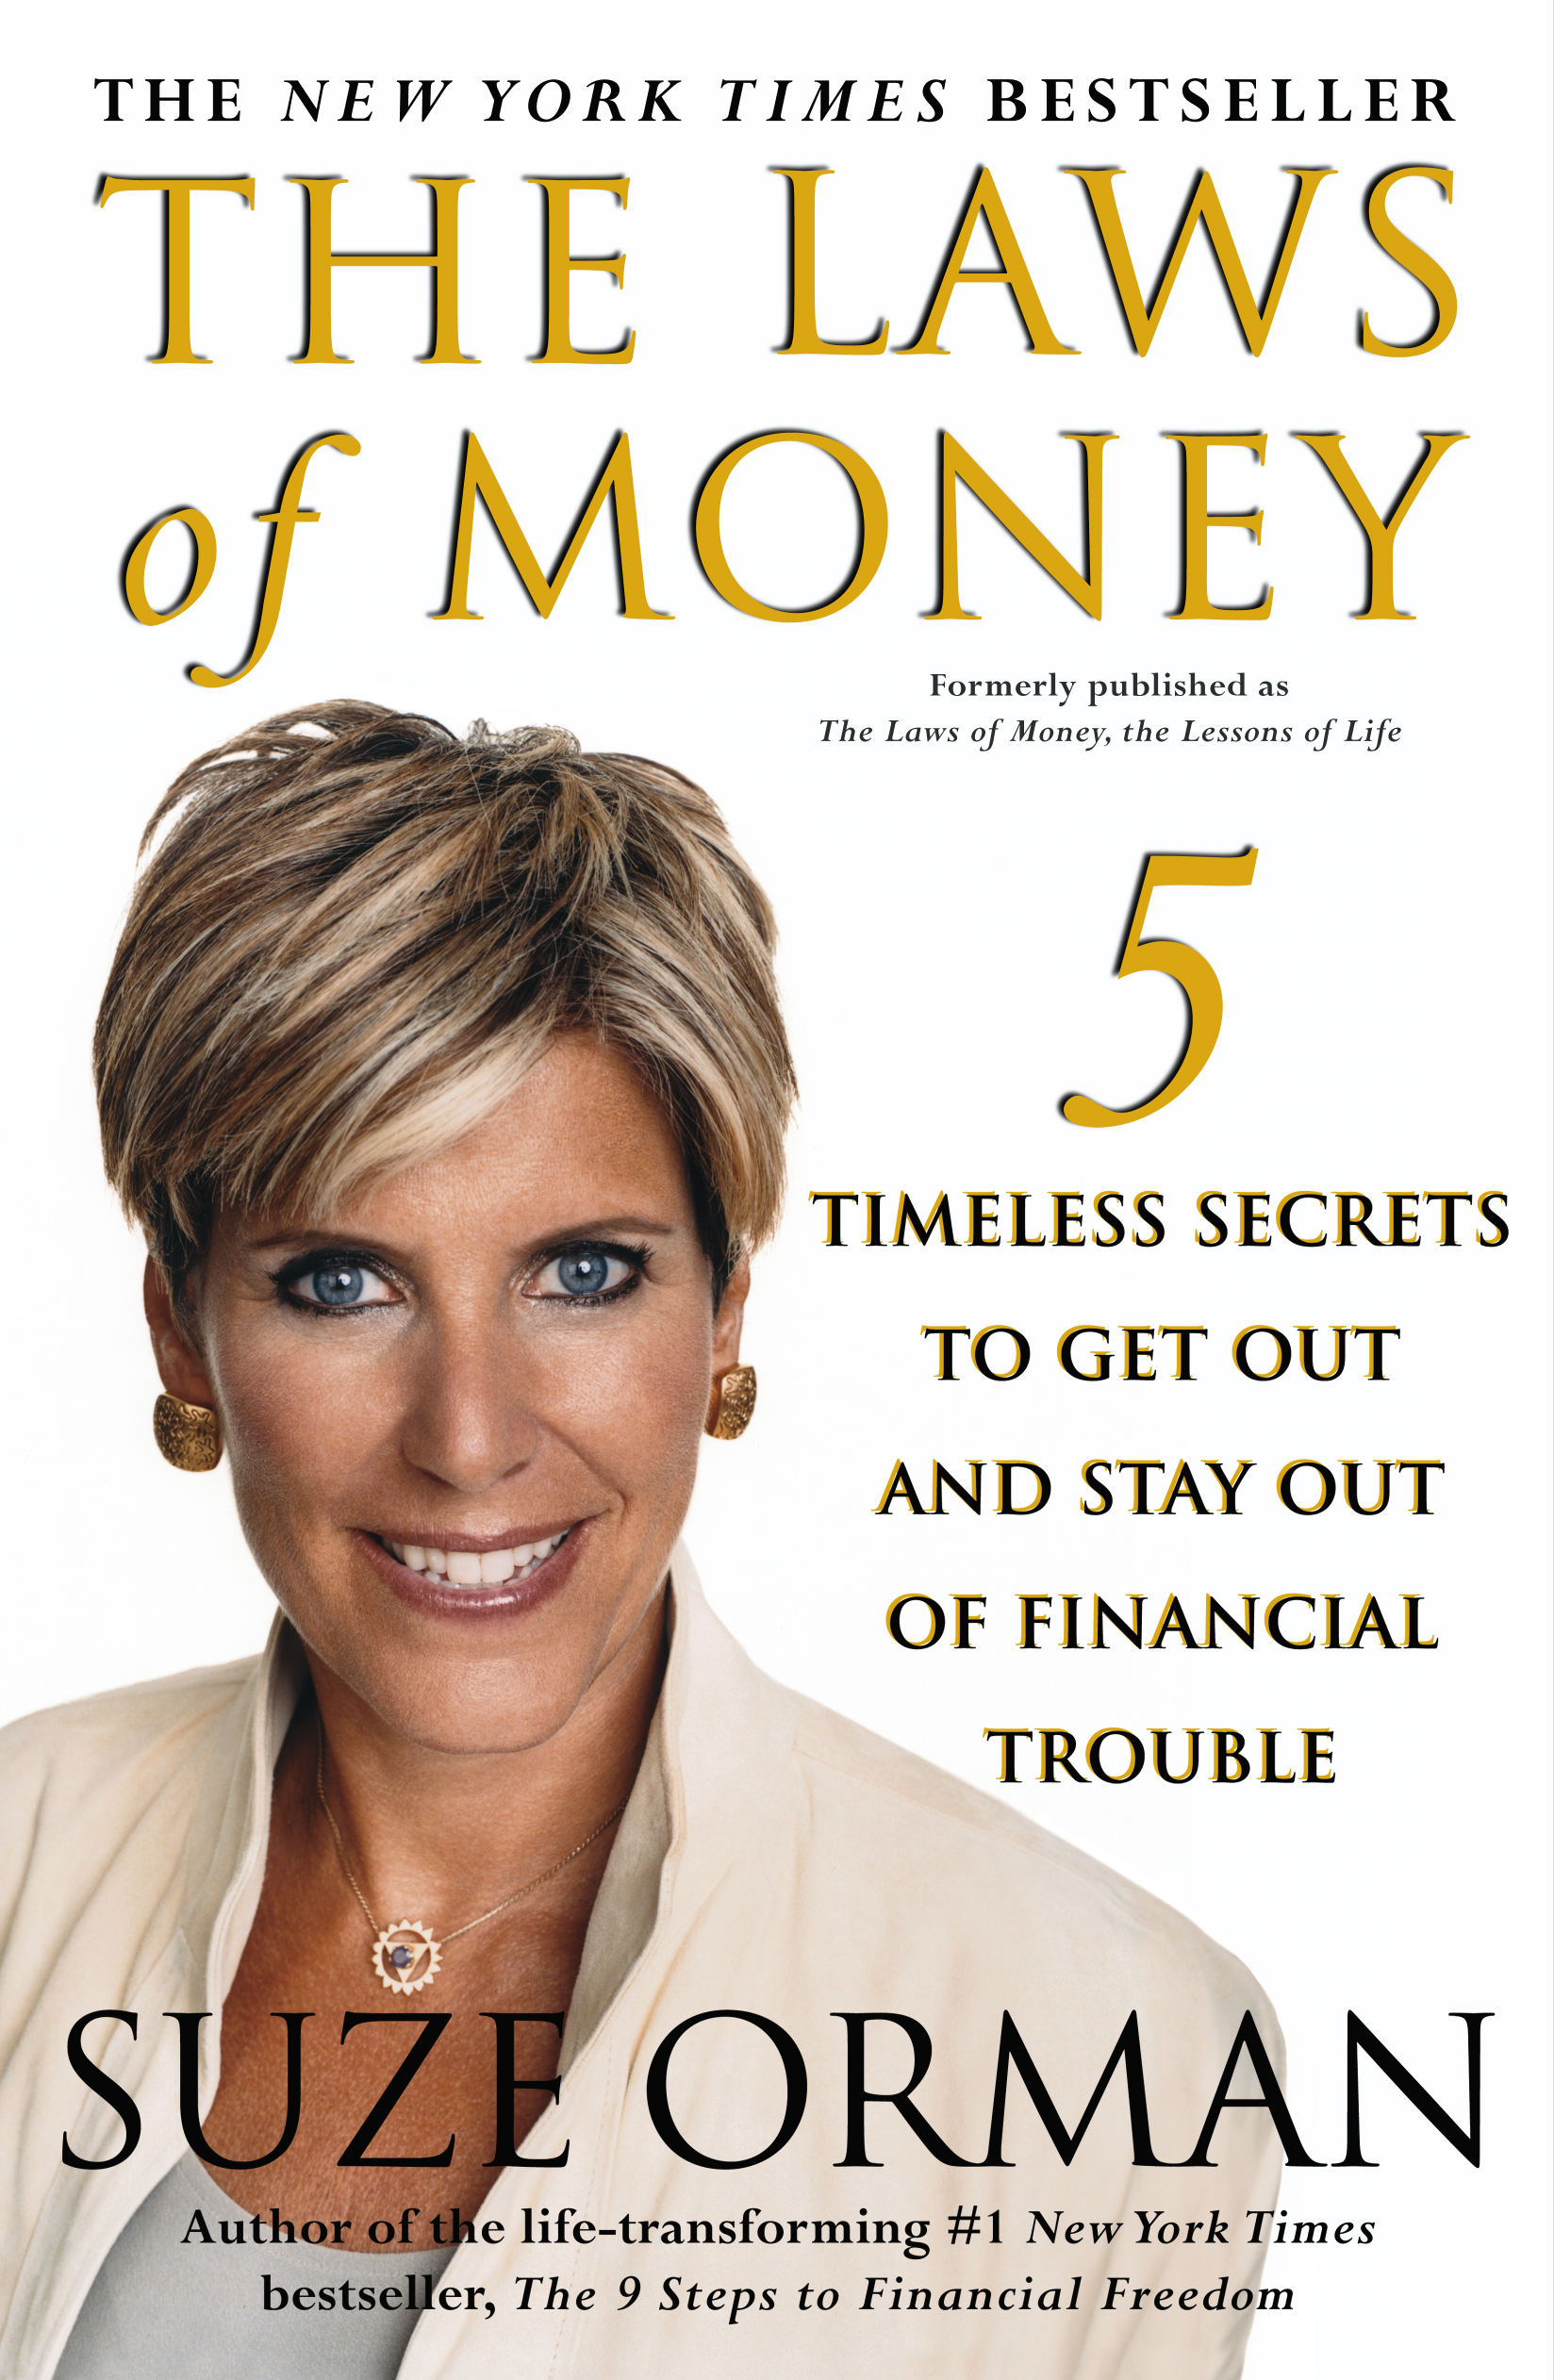 The laws of money book by suze orman official publisher page cvr9780743245180 9780743245180 hr solutioingenieria Choice Image